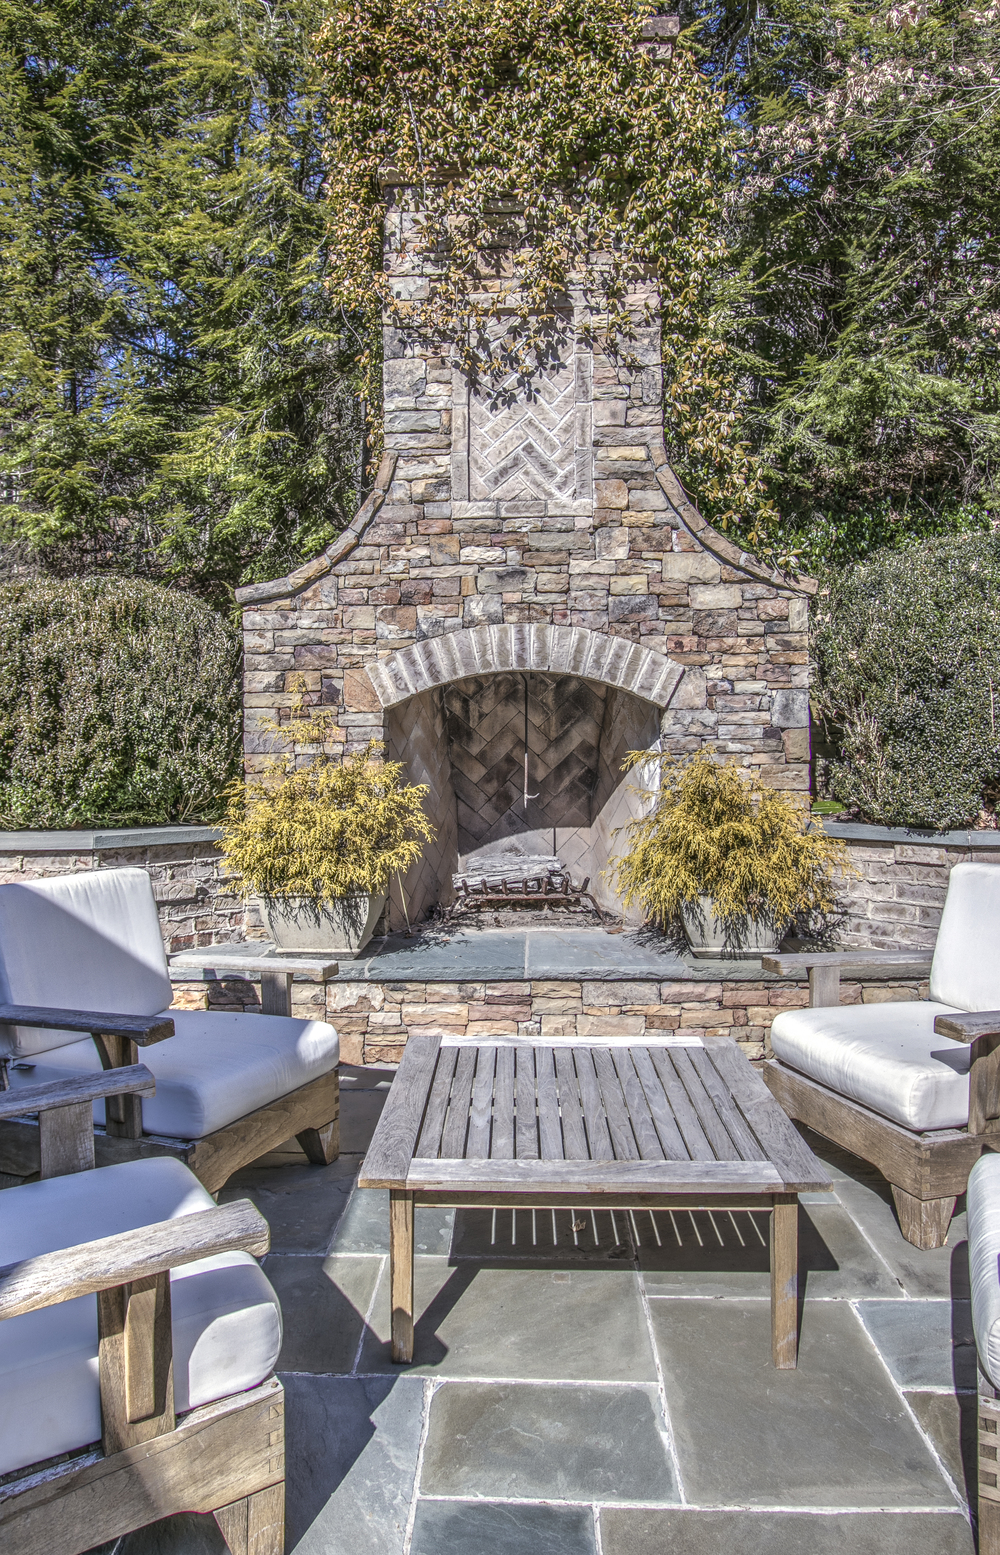 outdoor fireplace and grilling area